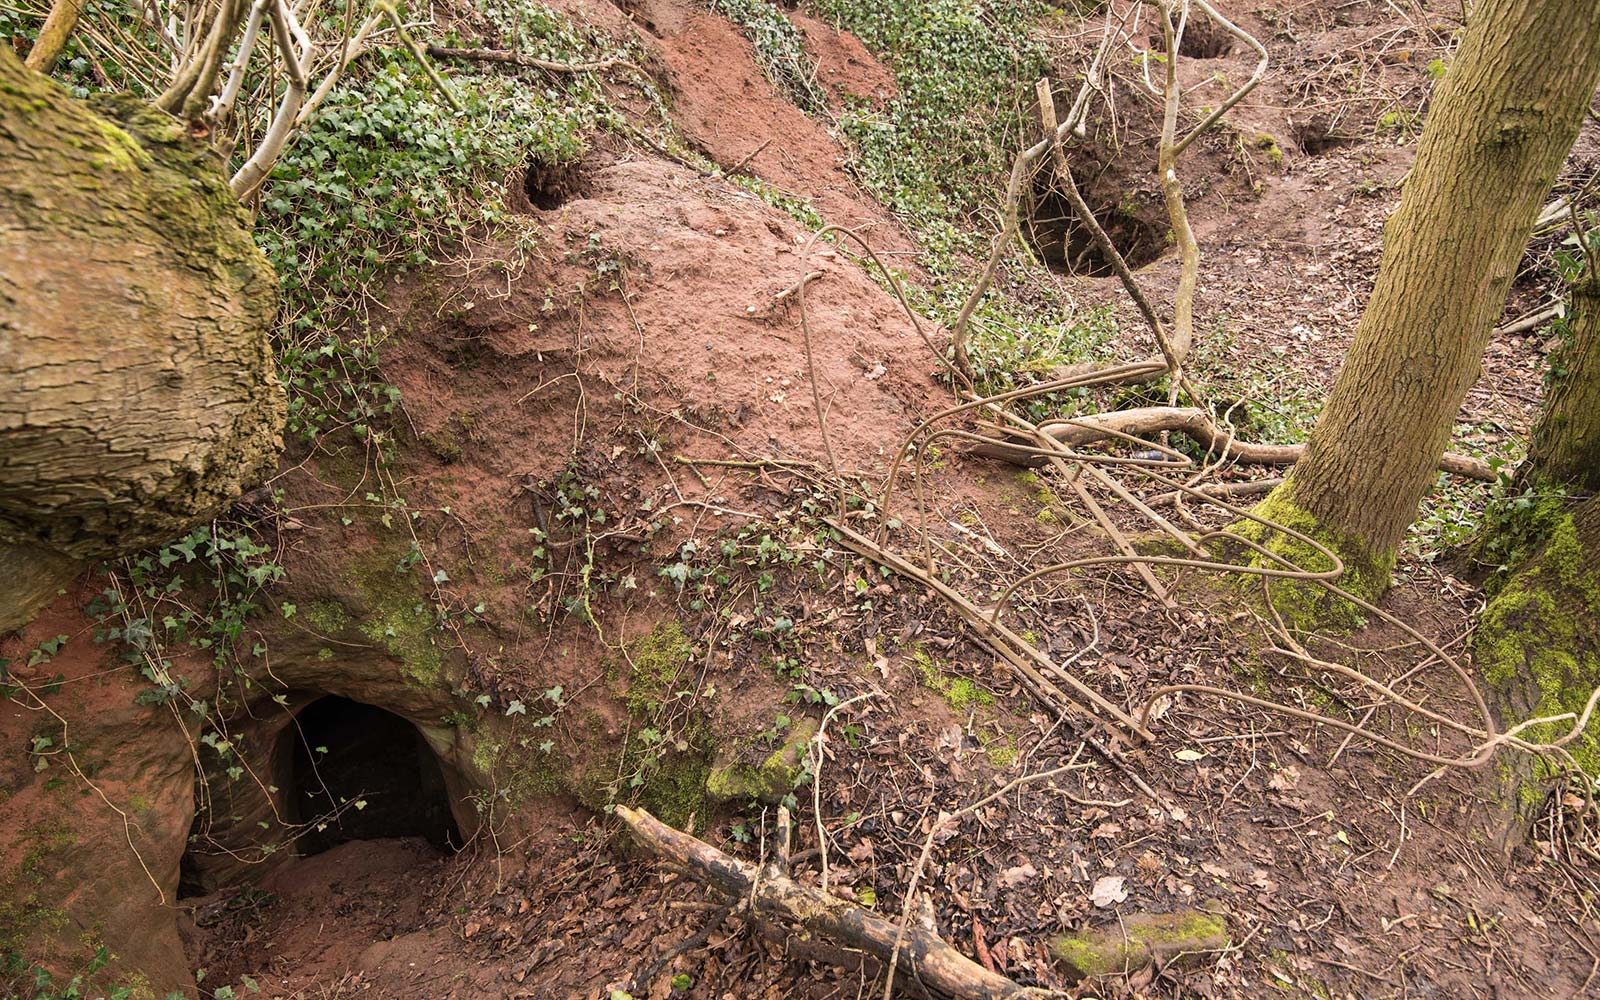 Rabbit hole to knight caves